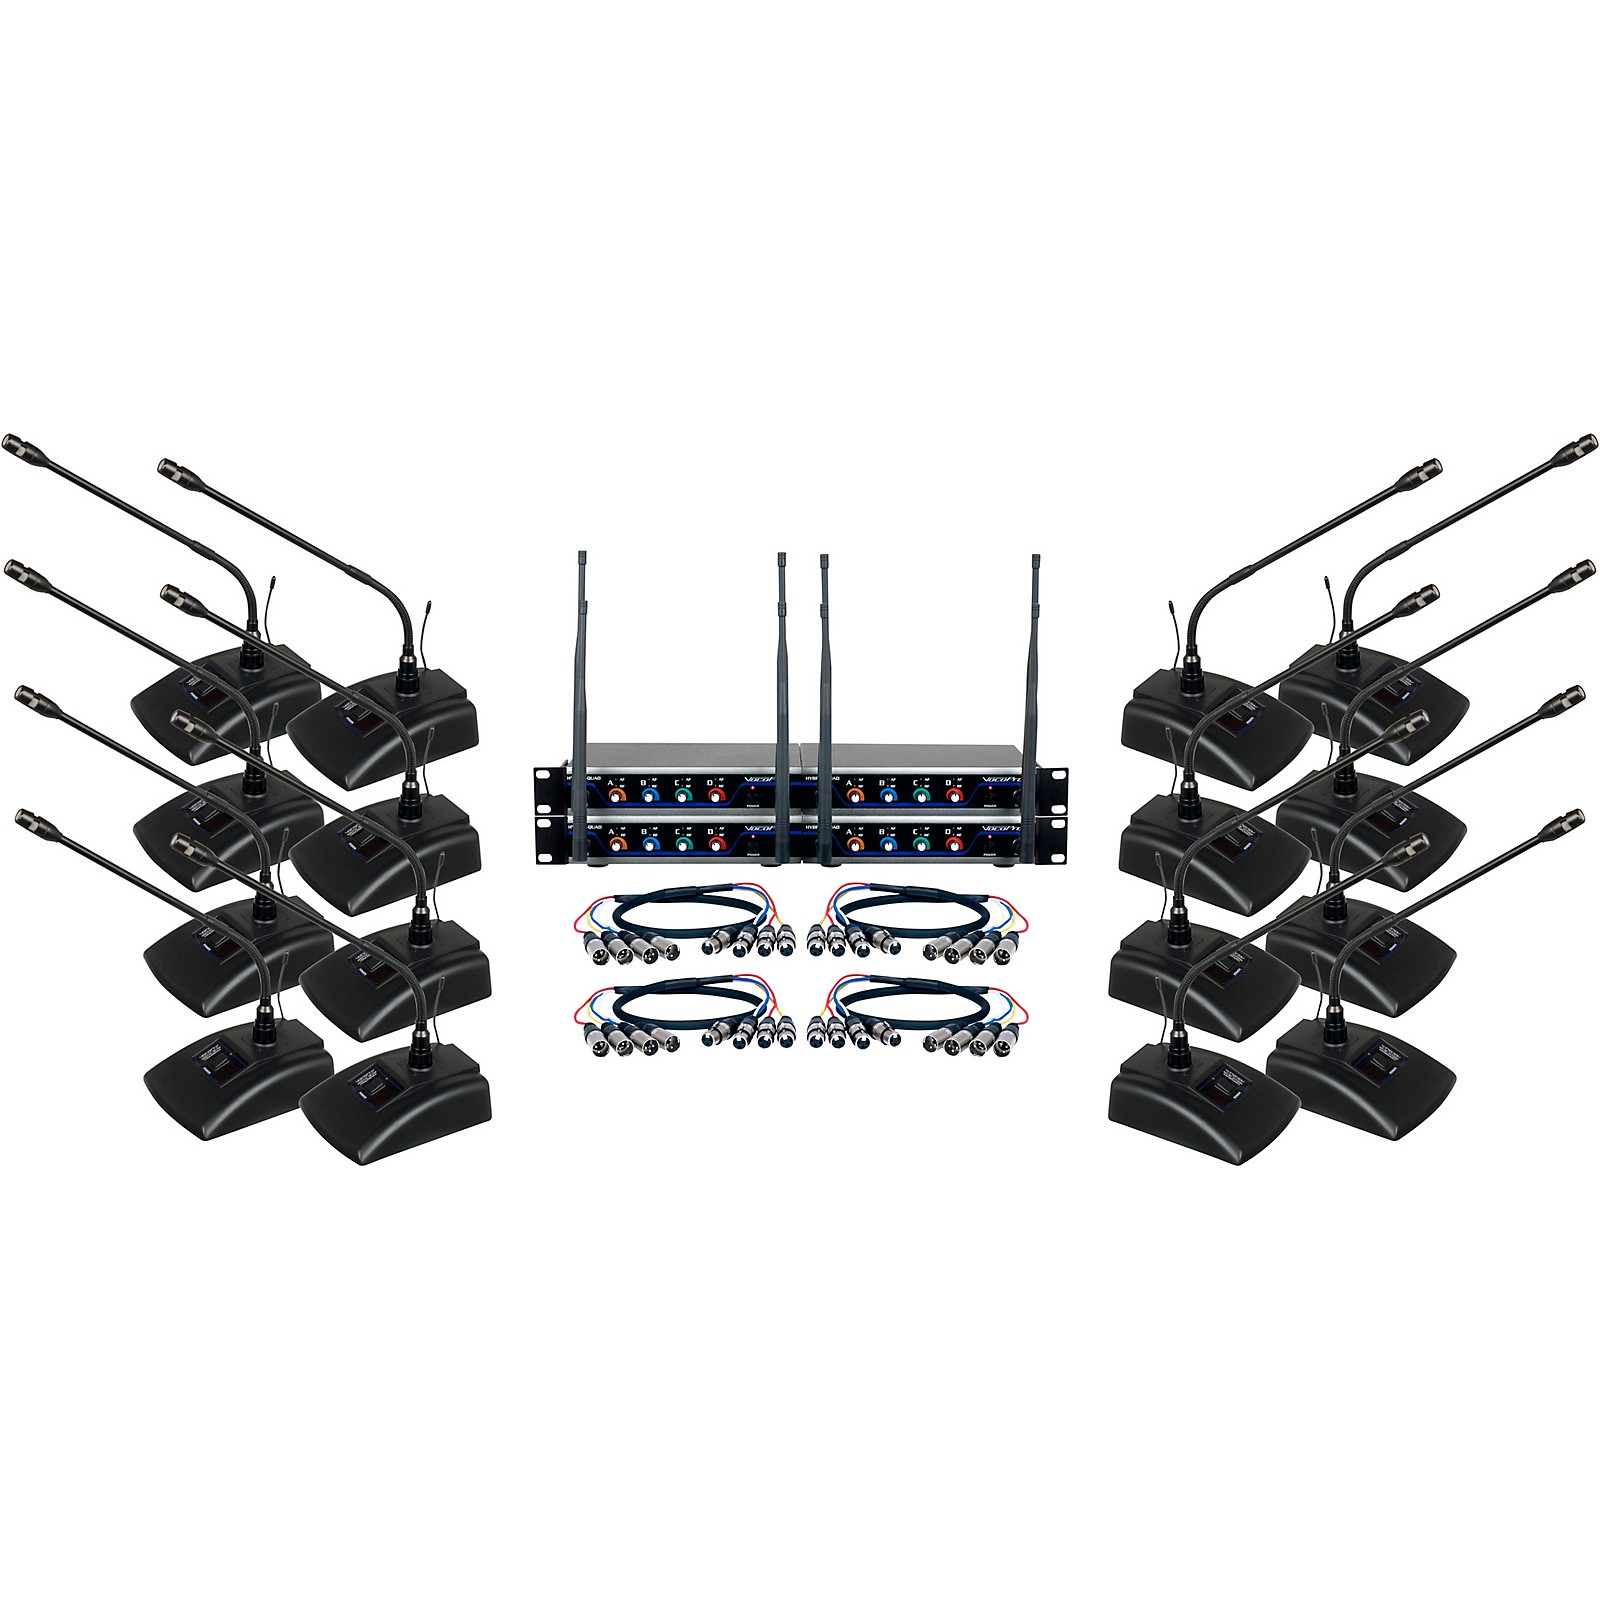 Vocopro Digital-Conference-12 Sixteen Channel UHF Wireless Conference Microphone System